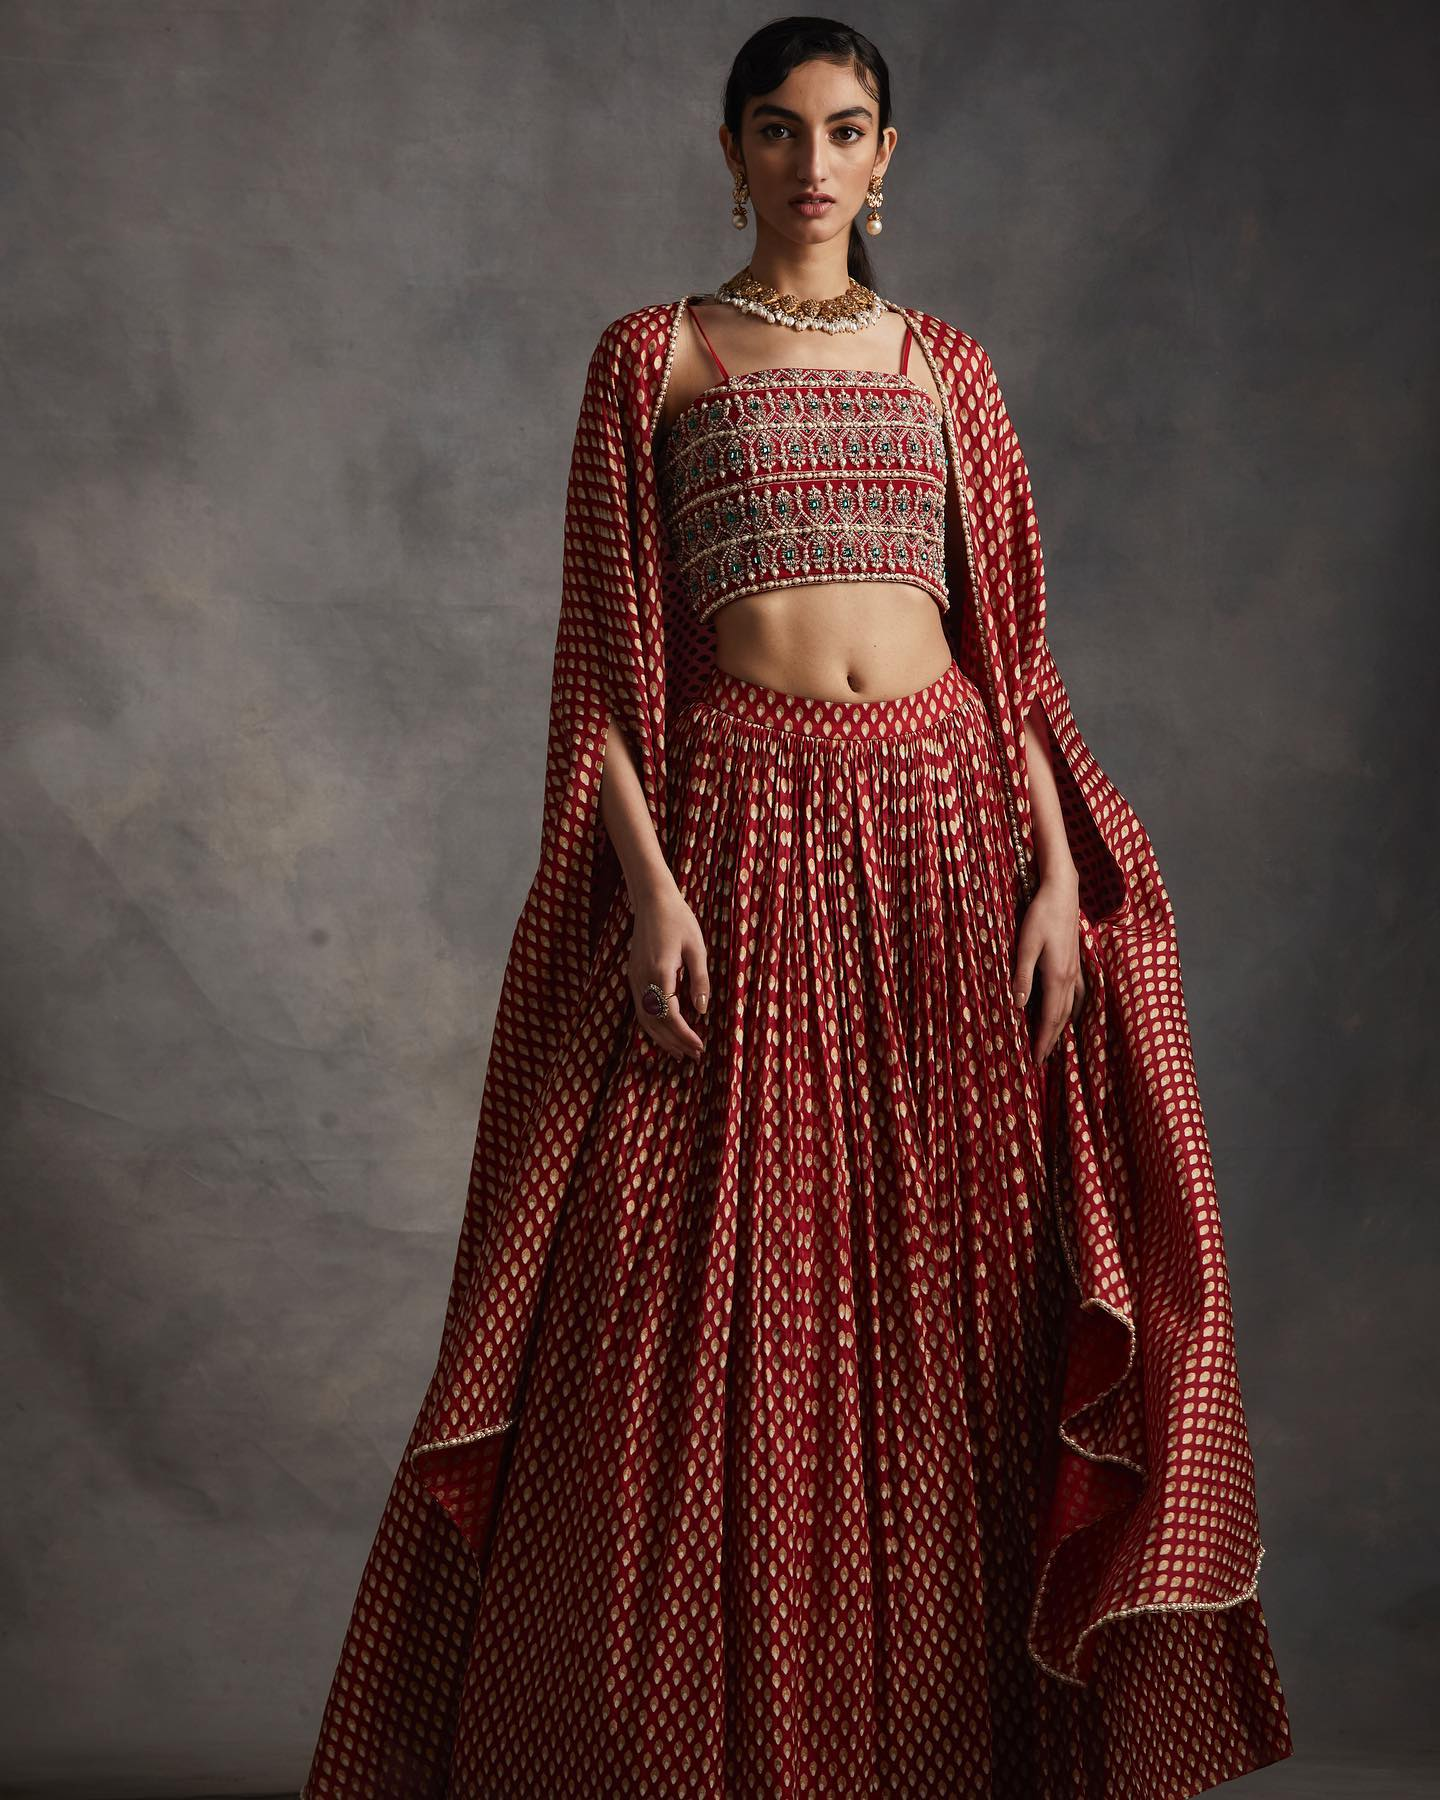 SUMMER ROMANCE . FESTIVE 2021 . PART 2  LOOK 7 - Ruby Red Bindu Print Long Cape Skirt and Embroidered Bustier. 2021-02-24